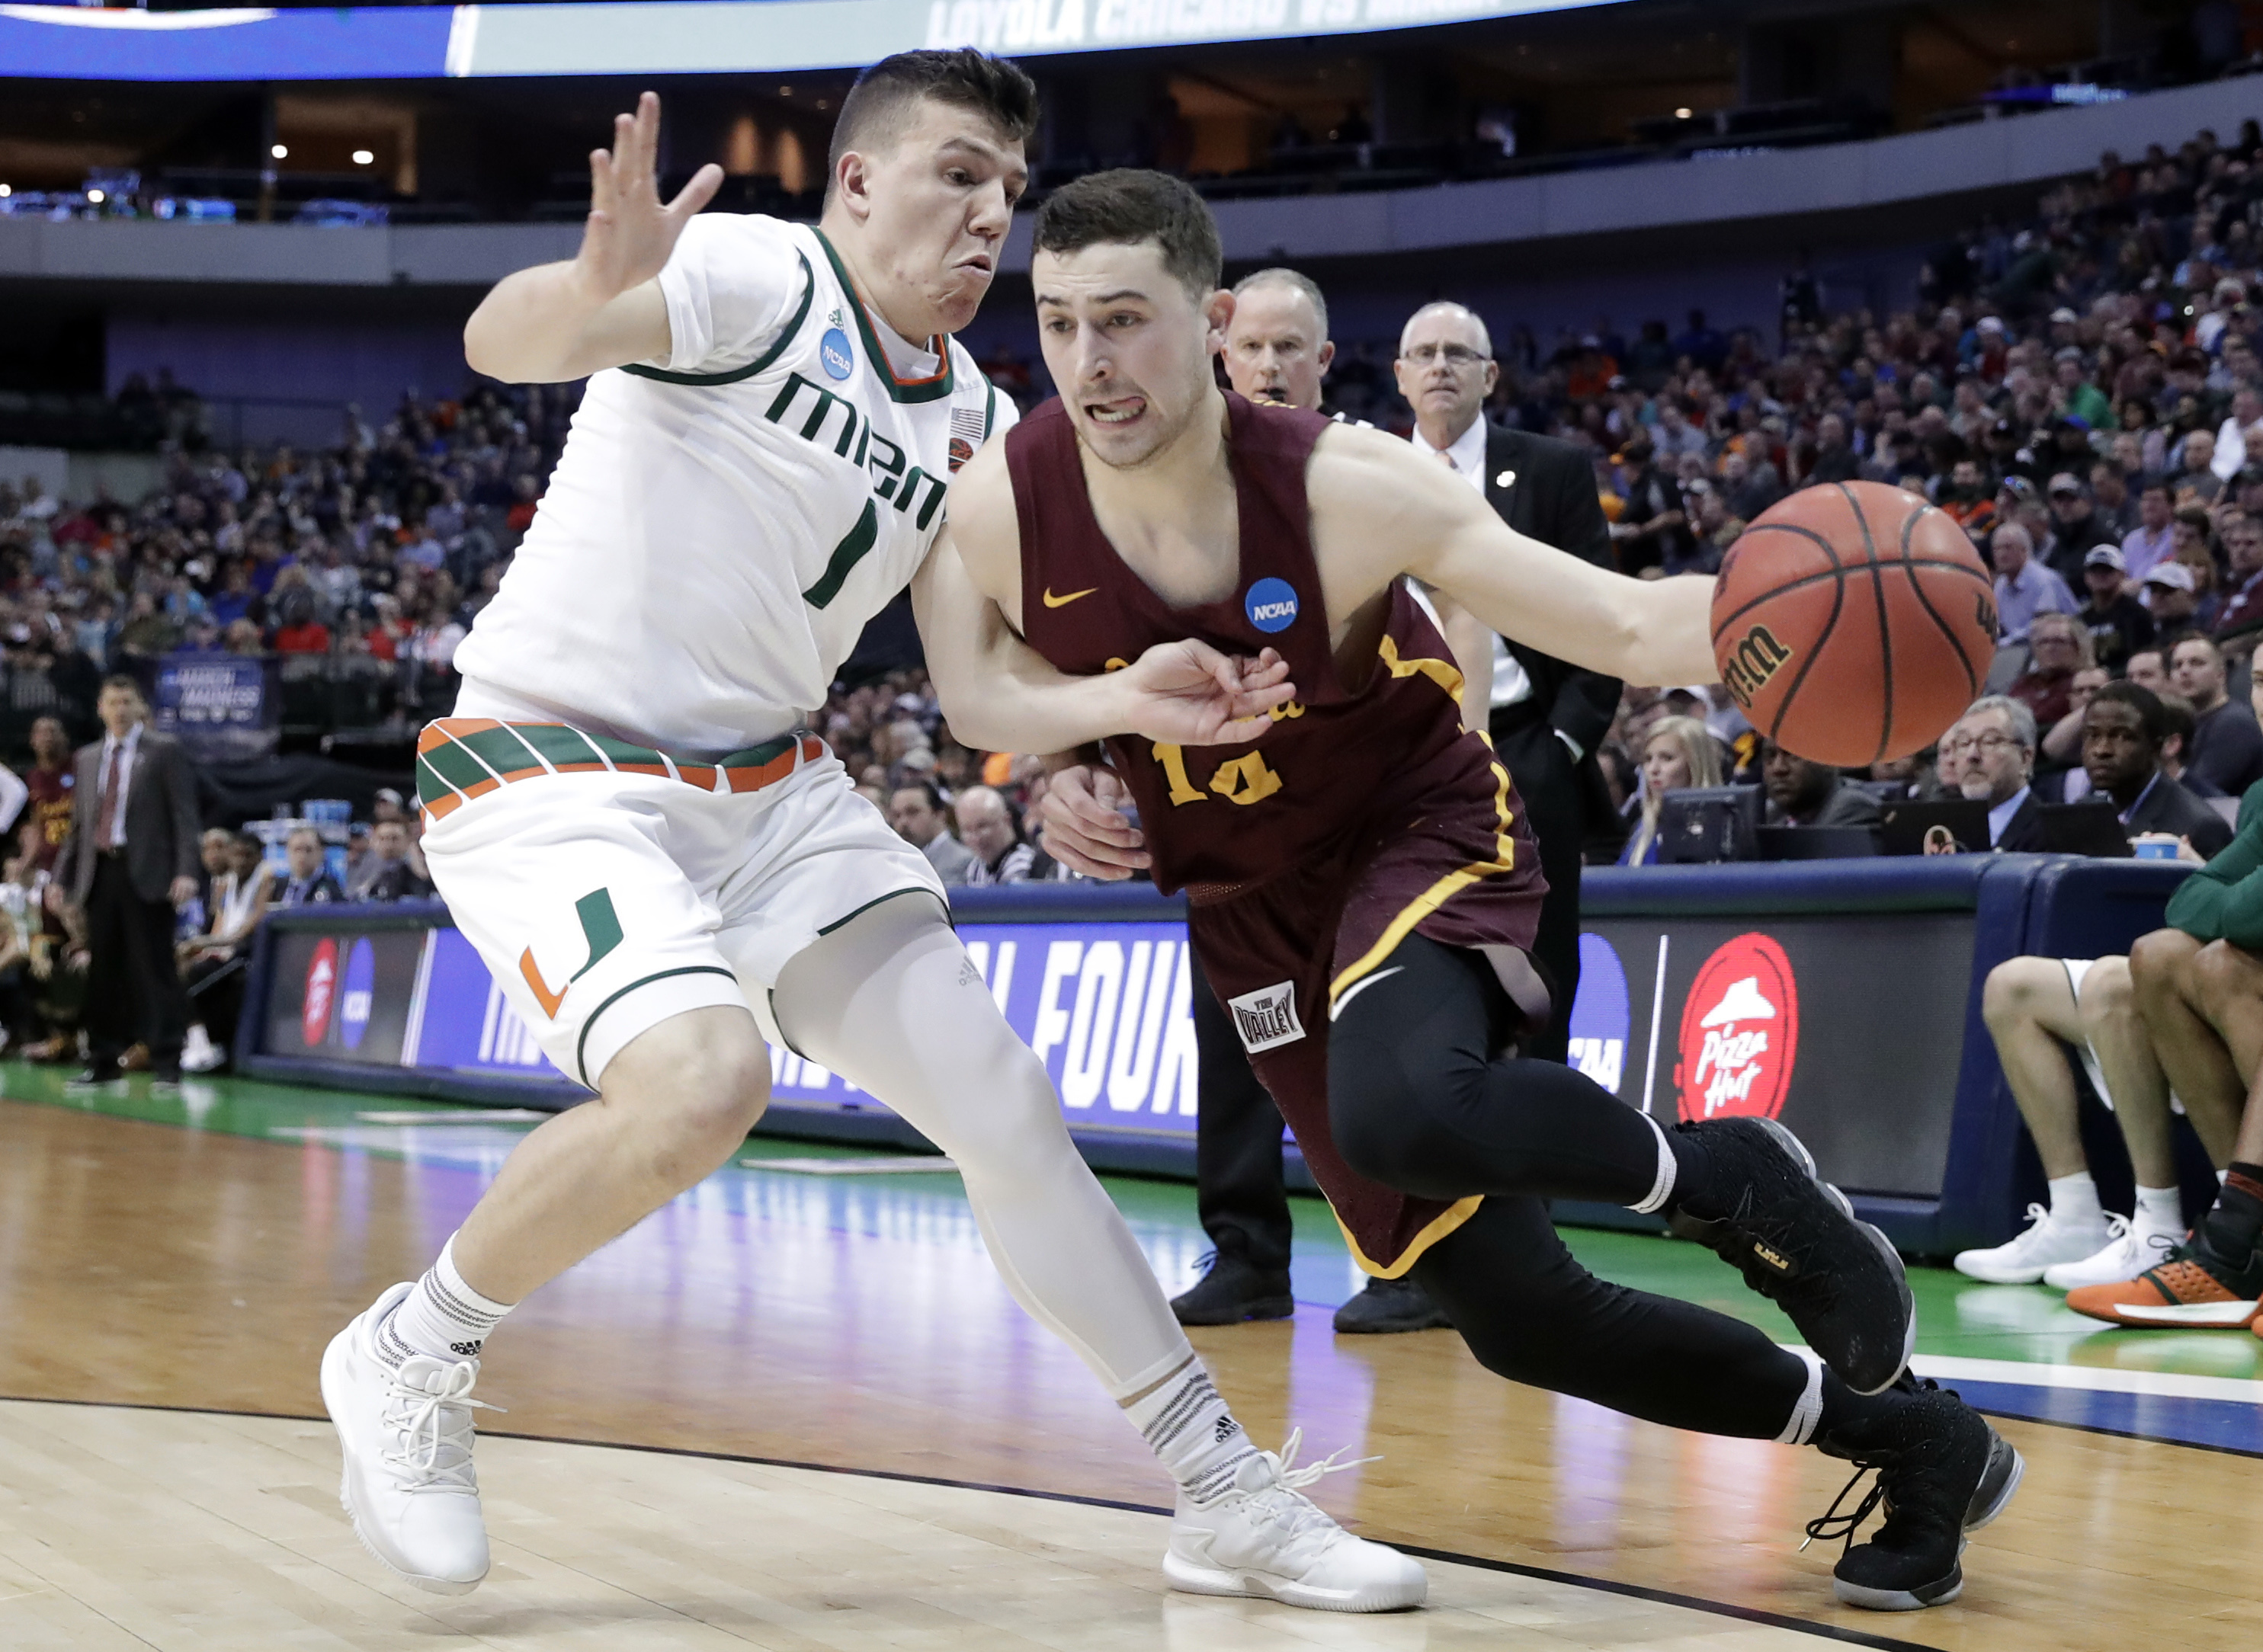 Donte Ingram buzzer-beater gives No. 11 Loyola-Chicago win over No. 6 Miami, first upset of week